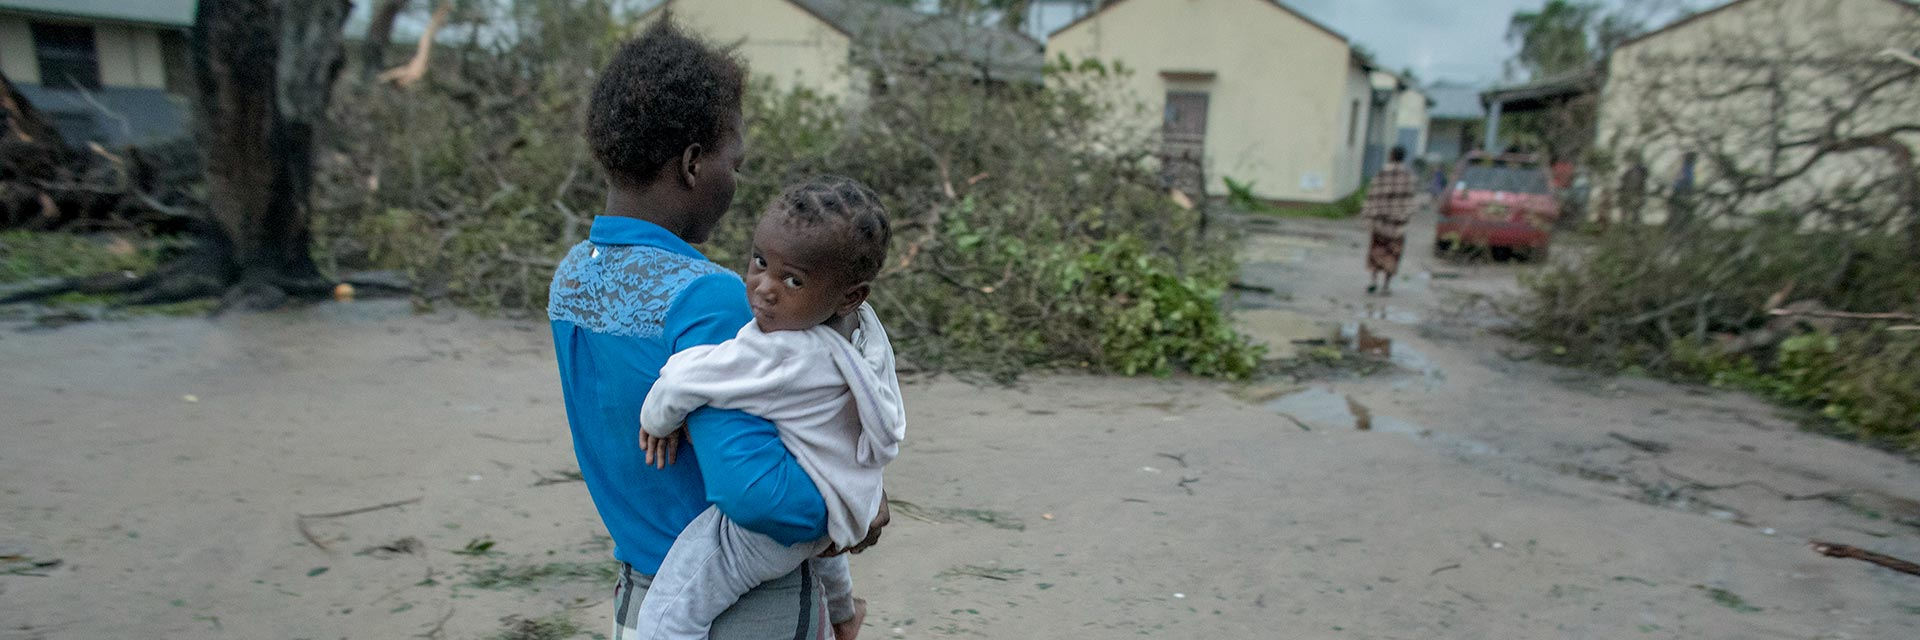 Mother and child in Mozambique after Cyclone Idai